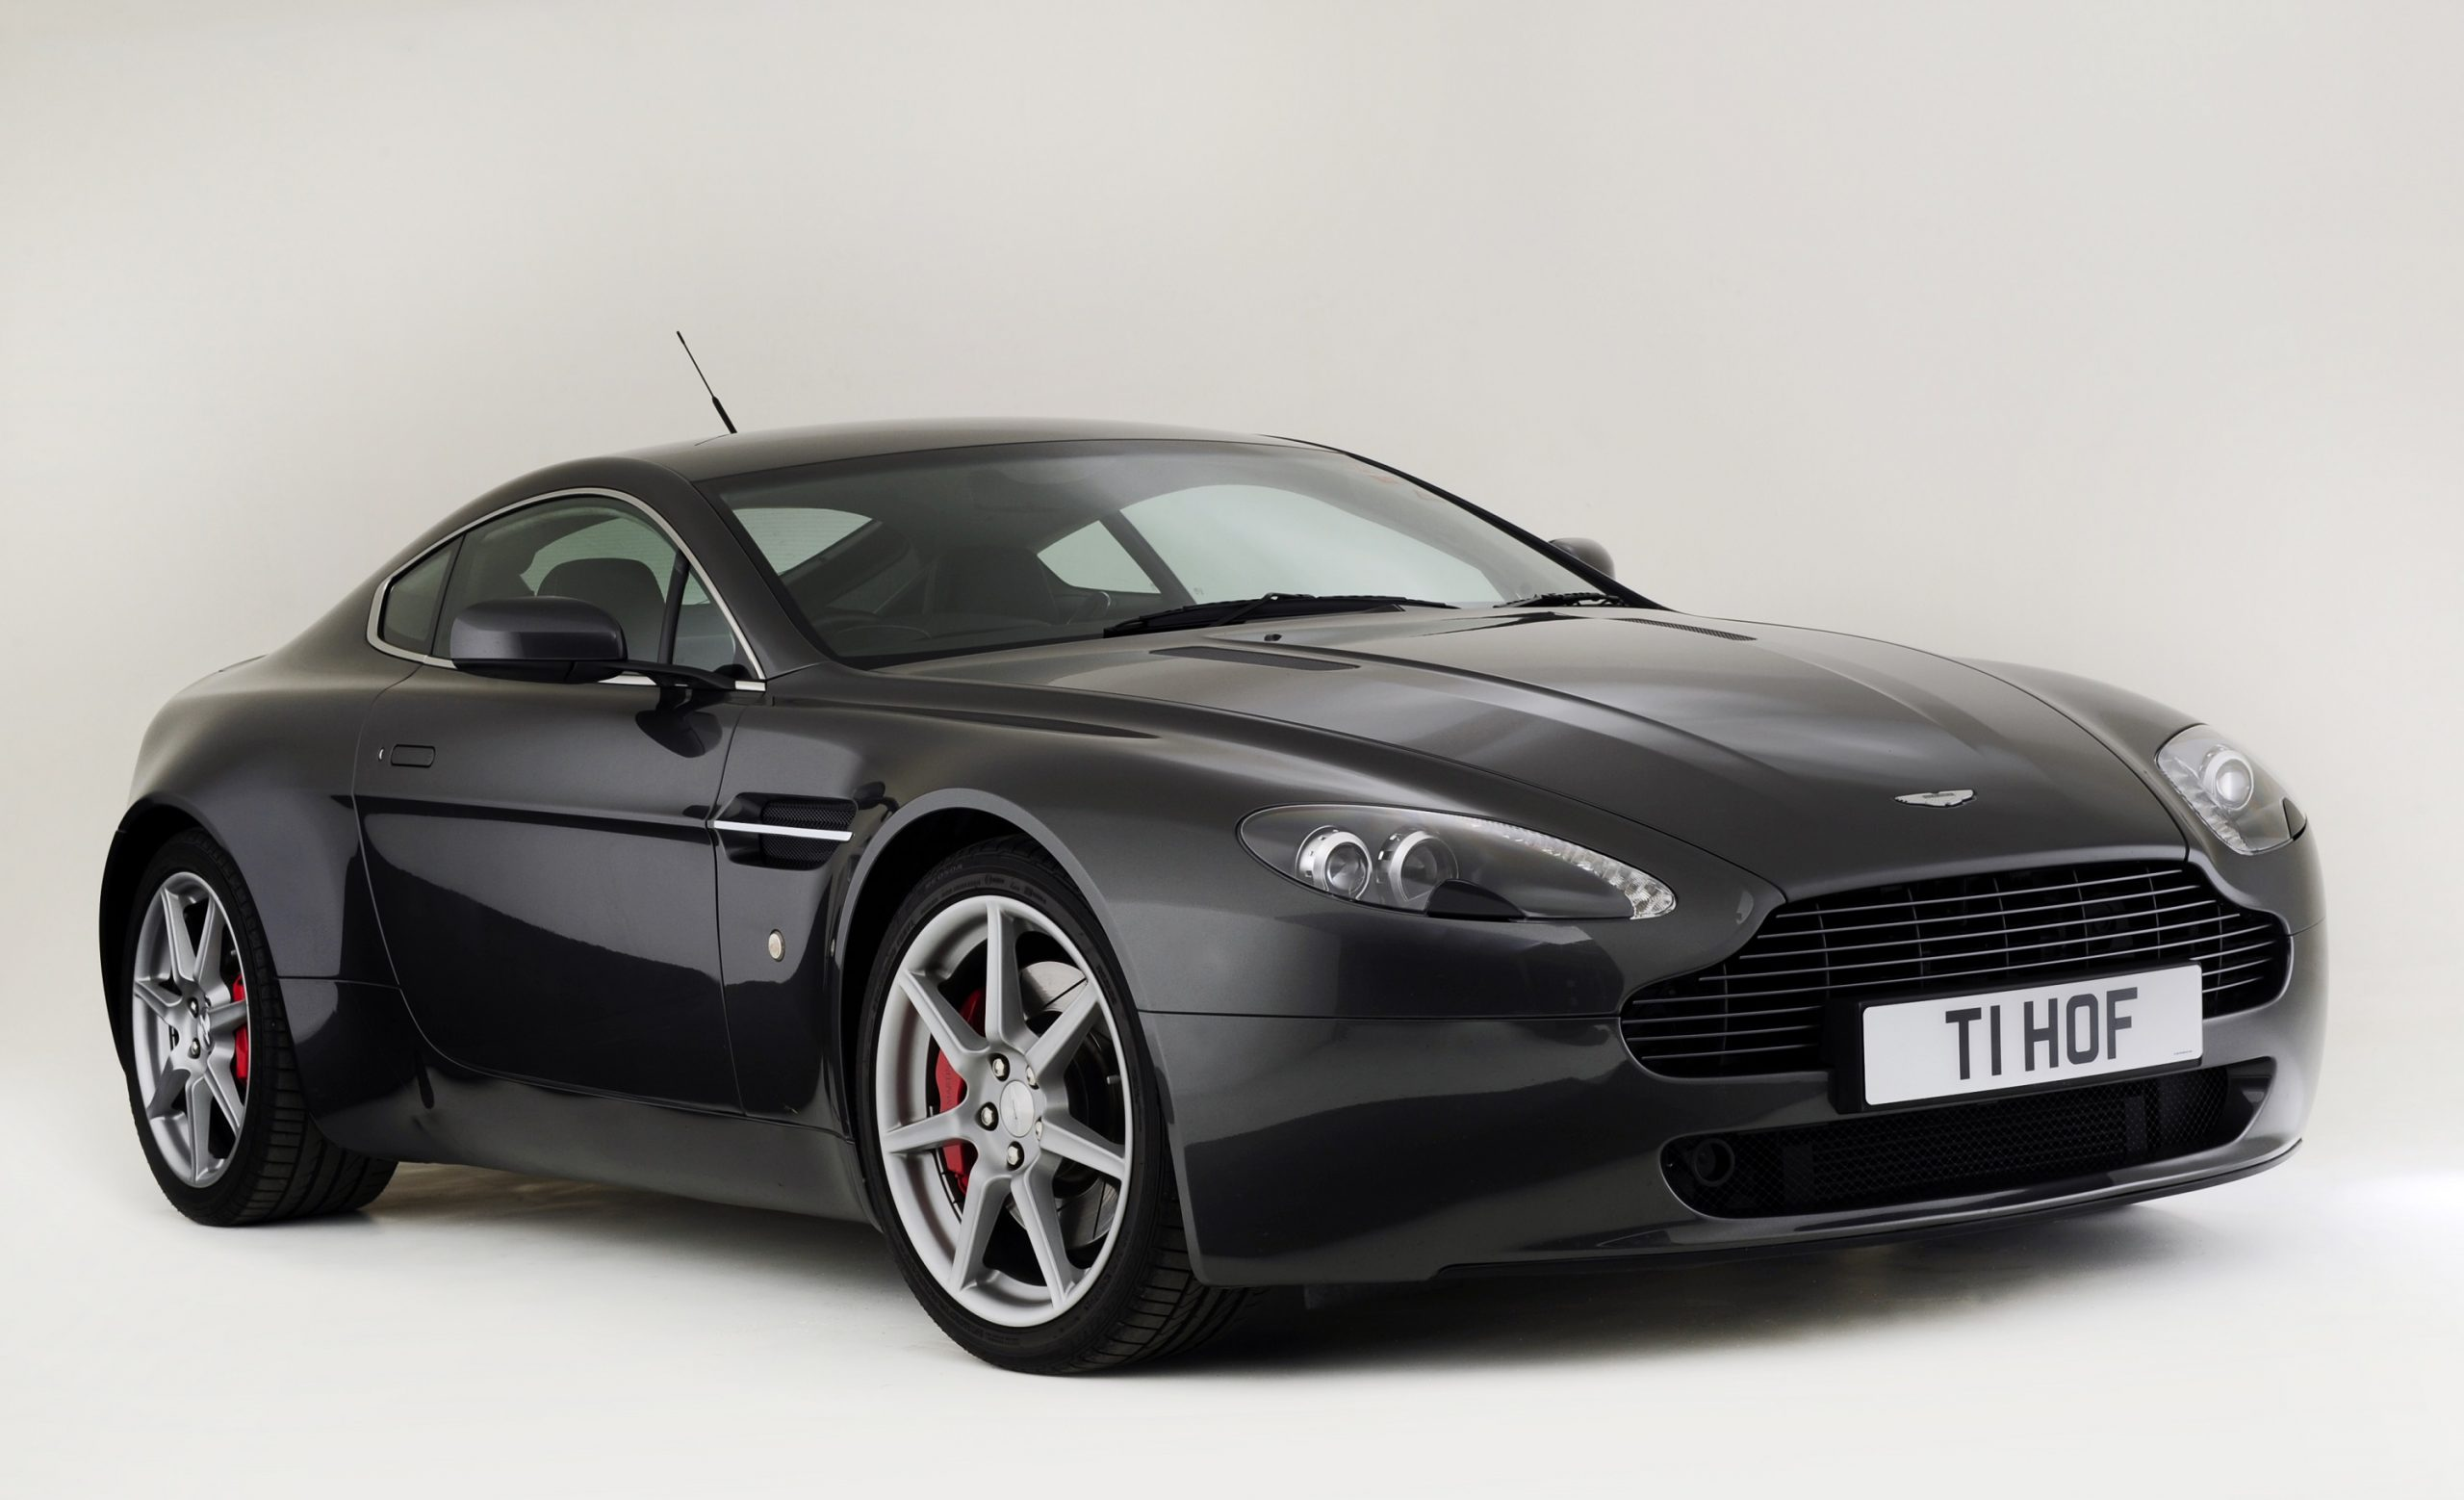 A black Aston Martin Vantage coupe shot from the front 3/4 angle in a studio booth